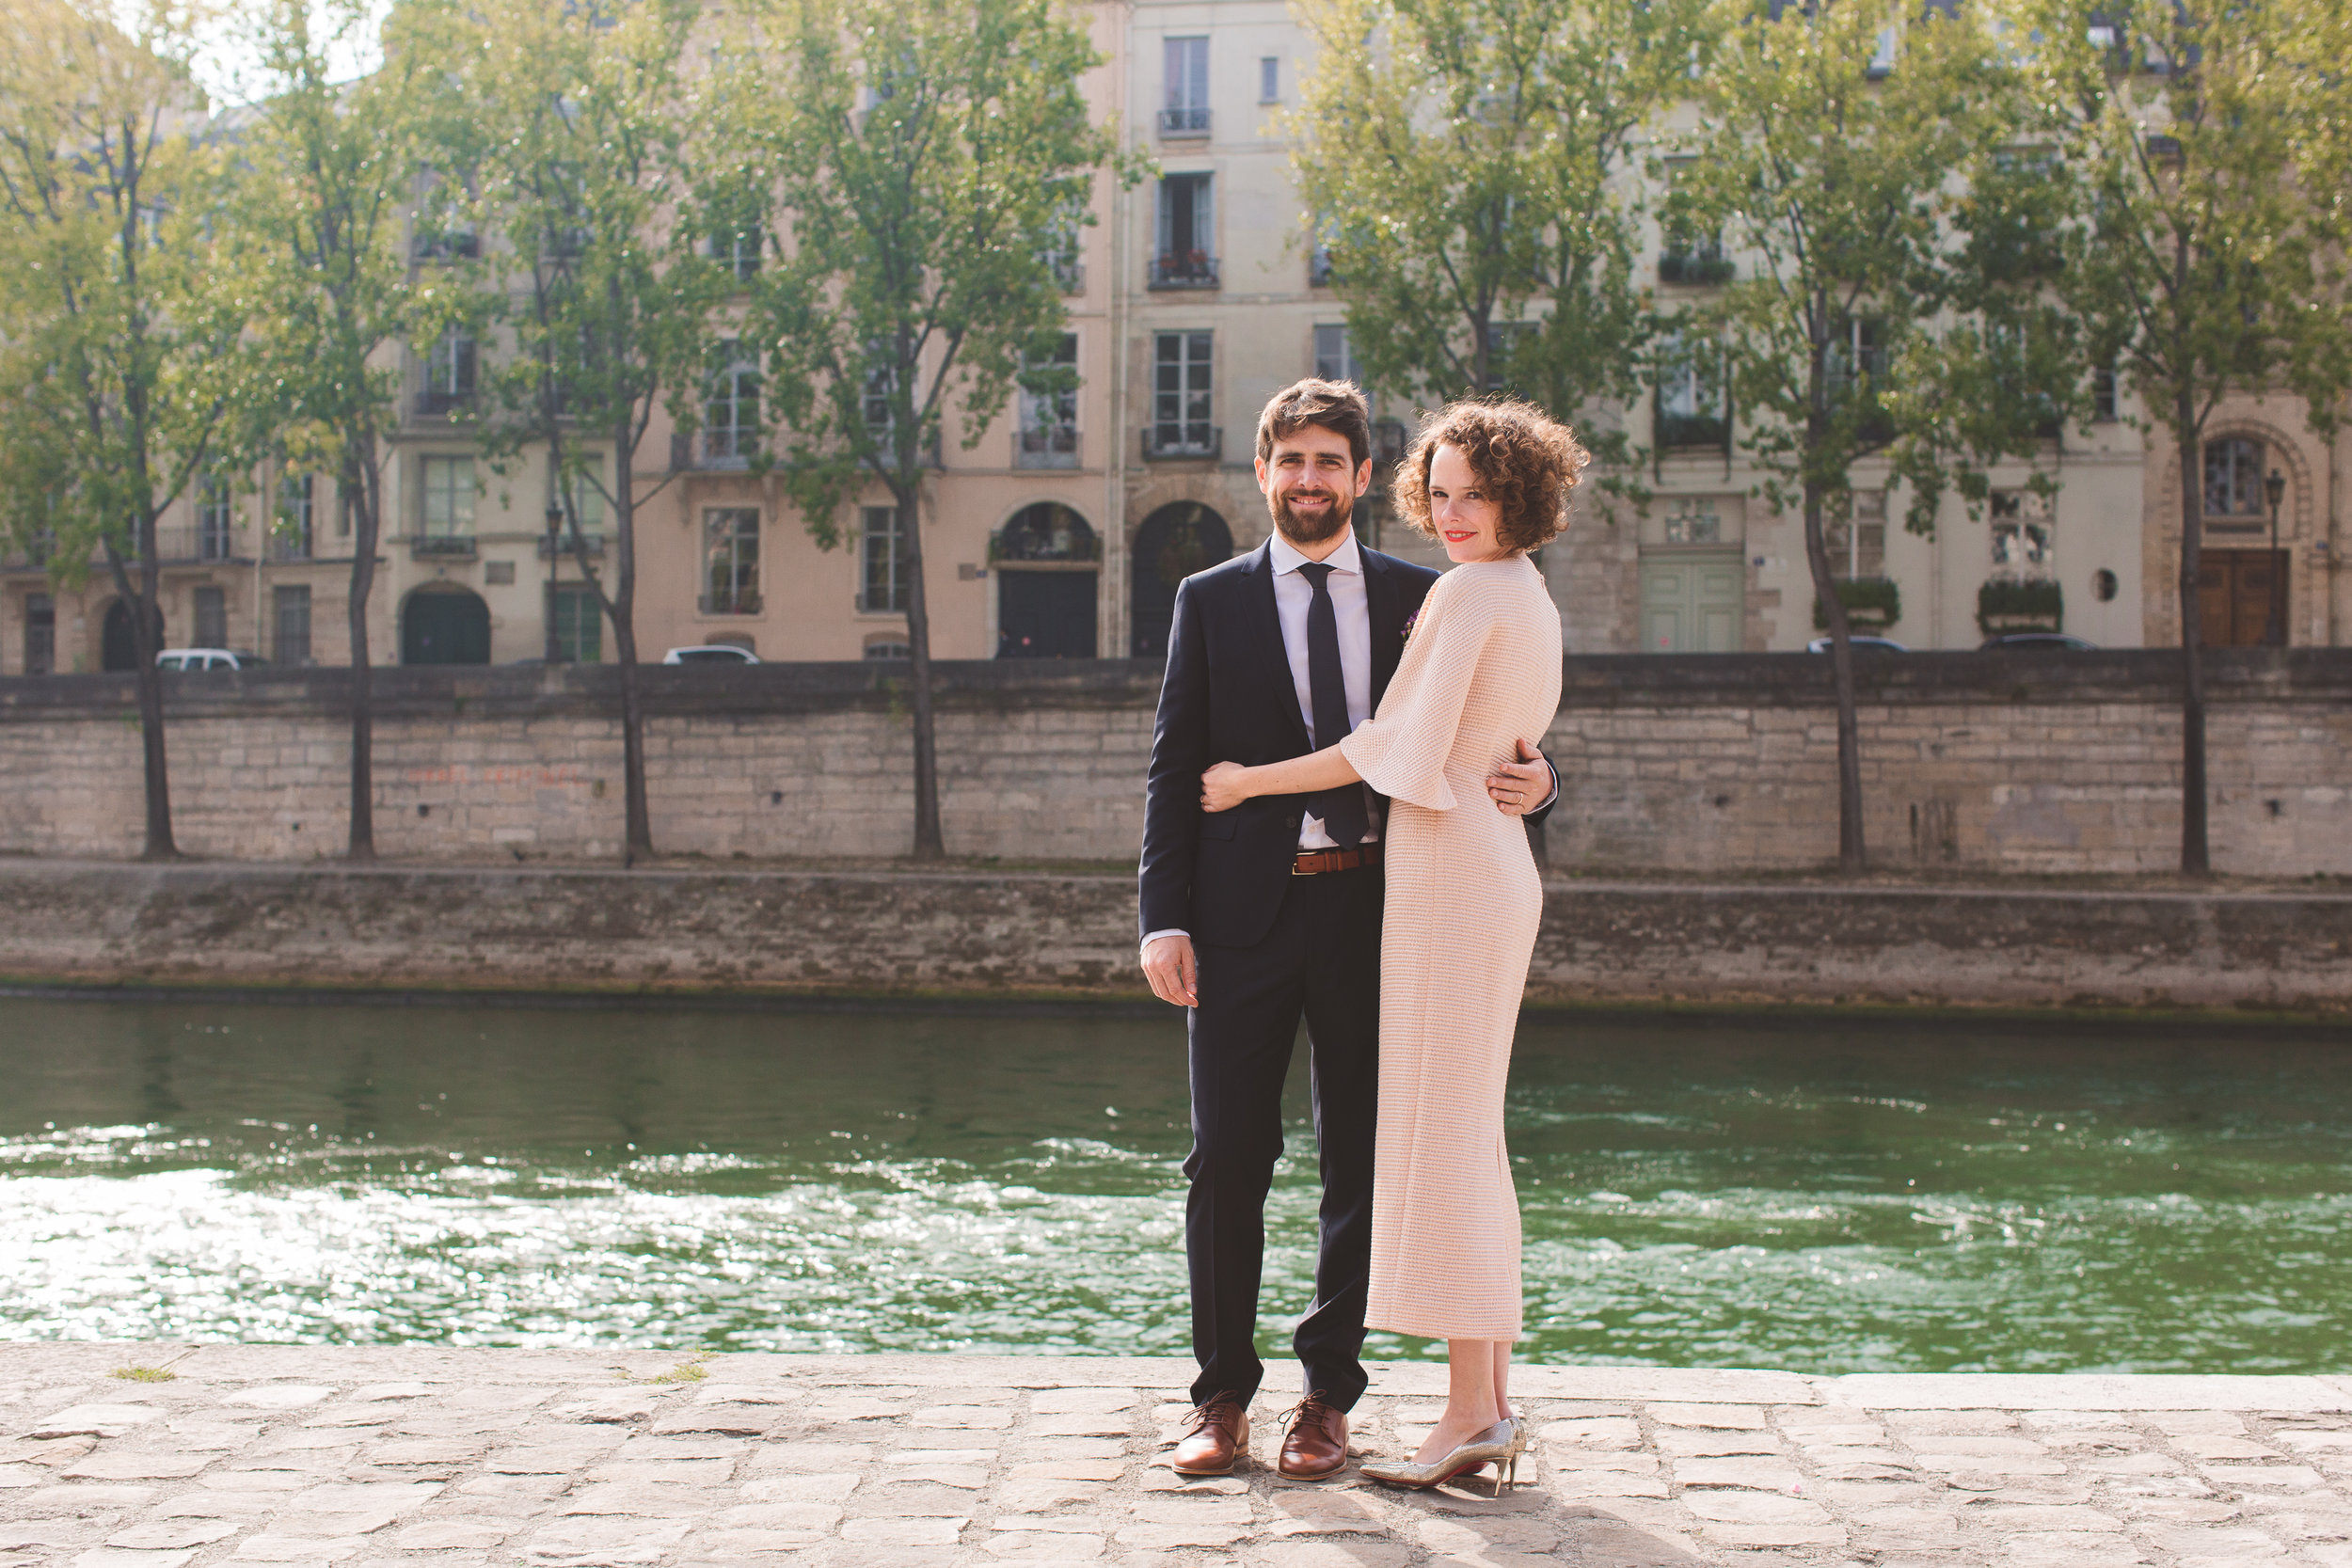 Emma&Nico_WeddingParis_by_UlaBlocksage-195.jpg